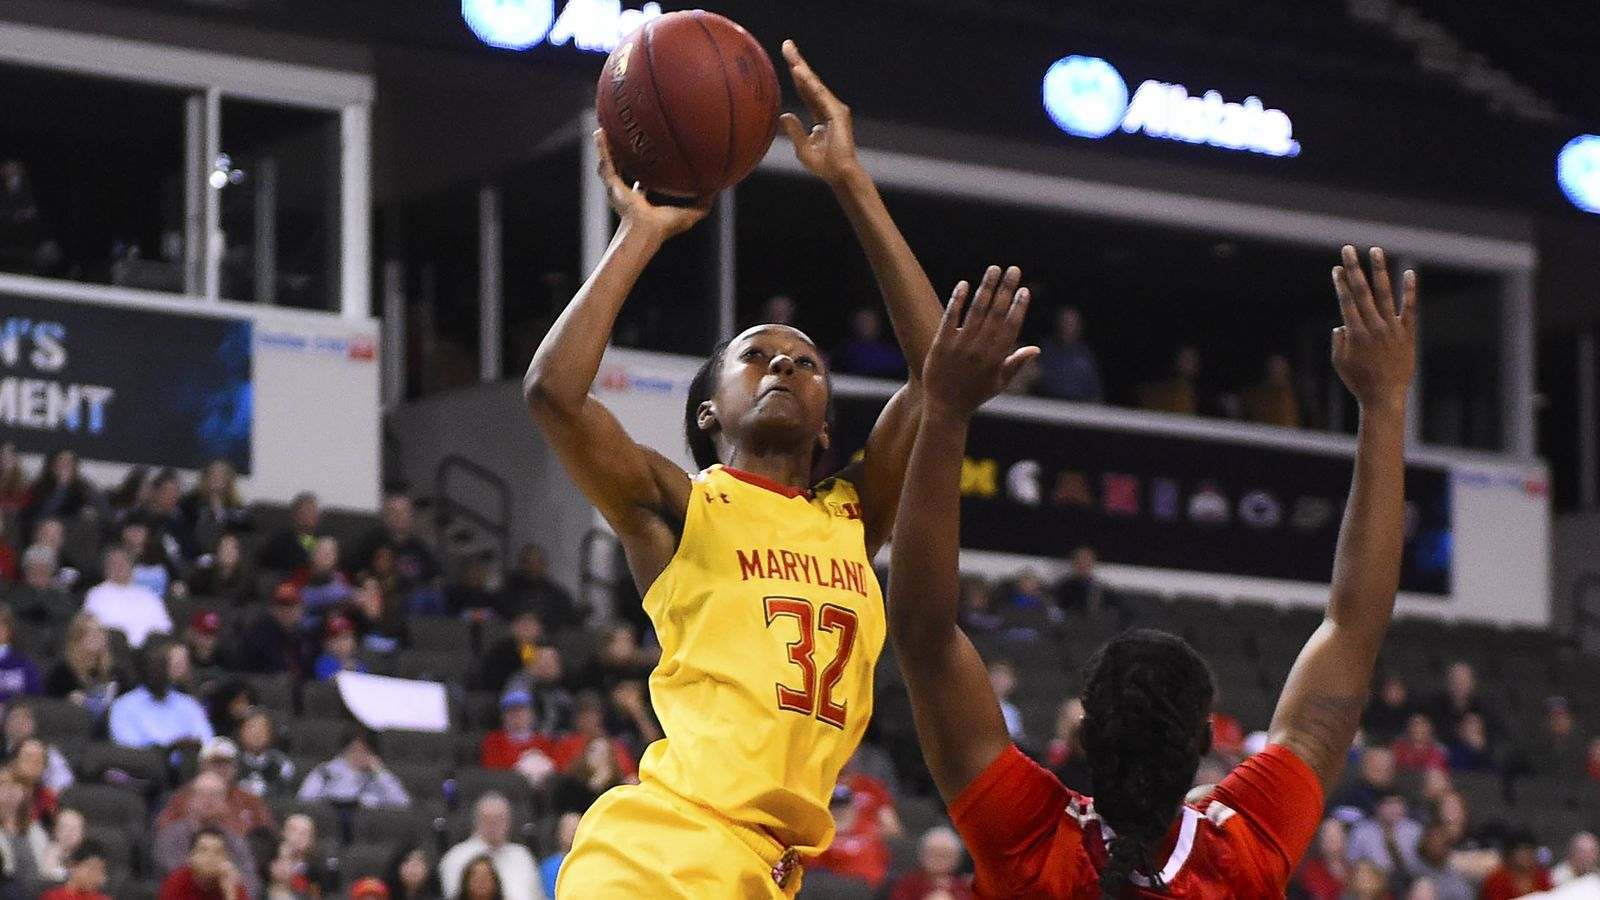 Maryland women's basketball preview: Terps battle Buckeyes ...